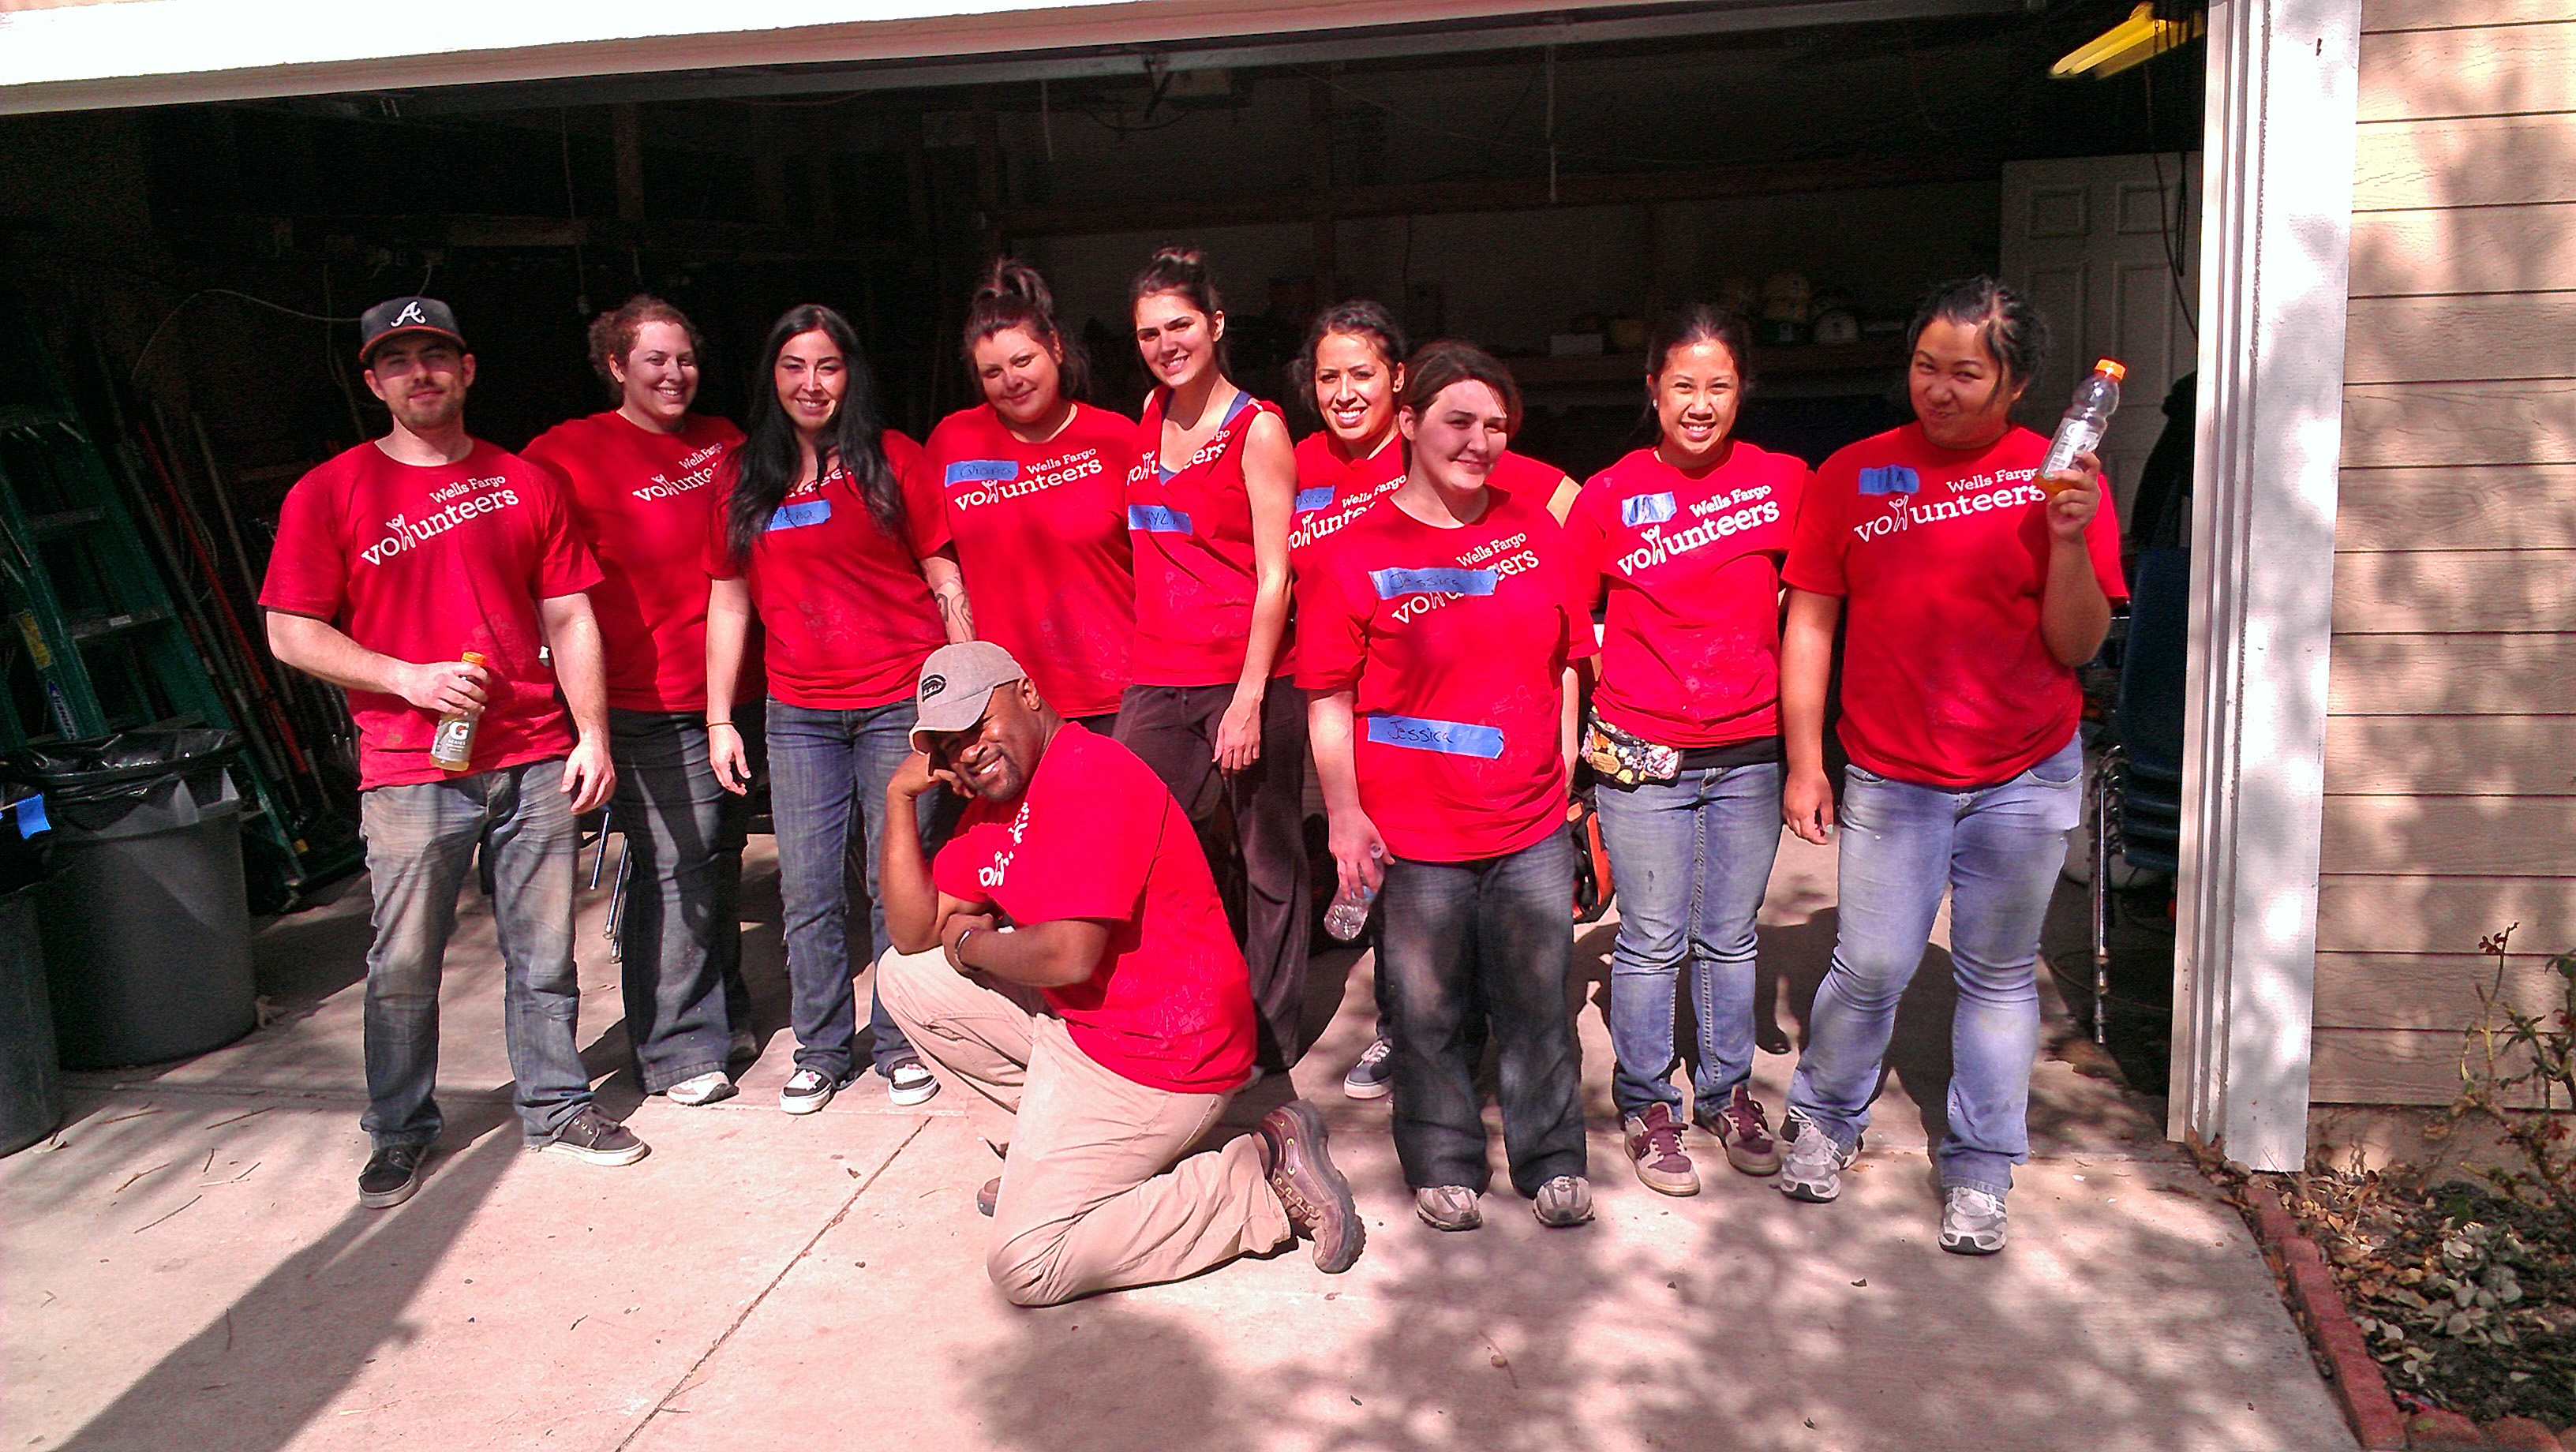 2/11/12-Wells Fargo Demolition Day-Group Shot